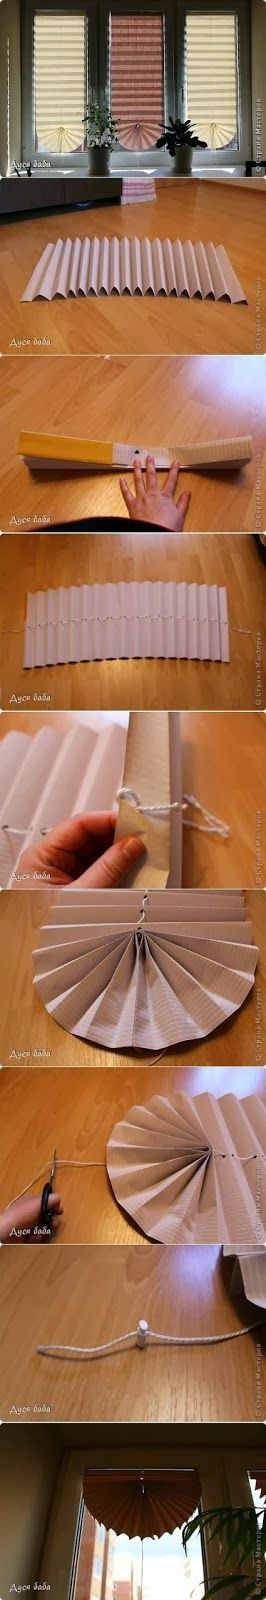 My DIY Projects: Make a Fan Curtain by papers